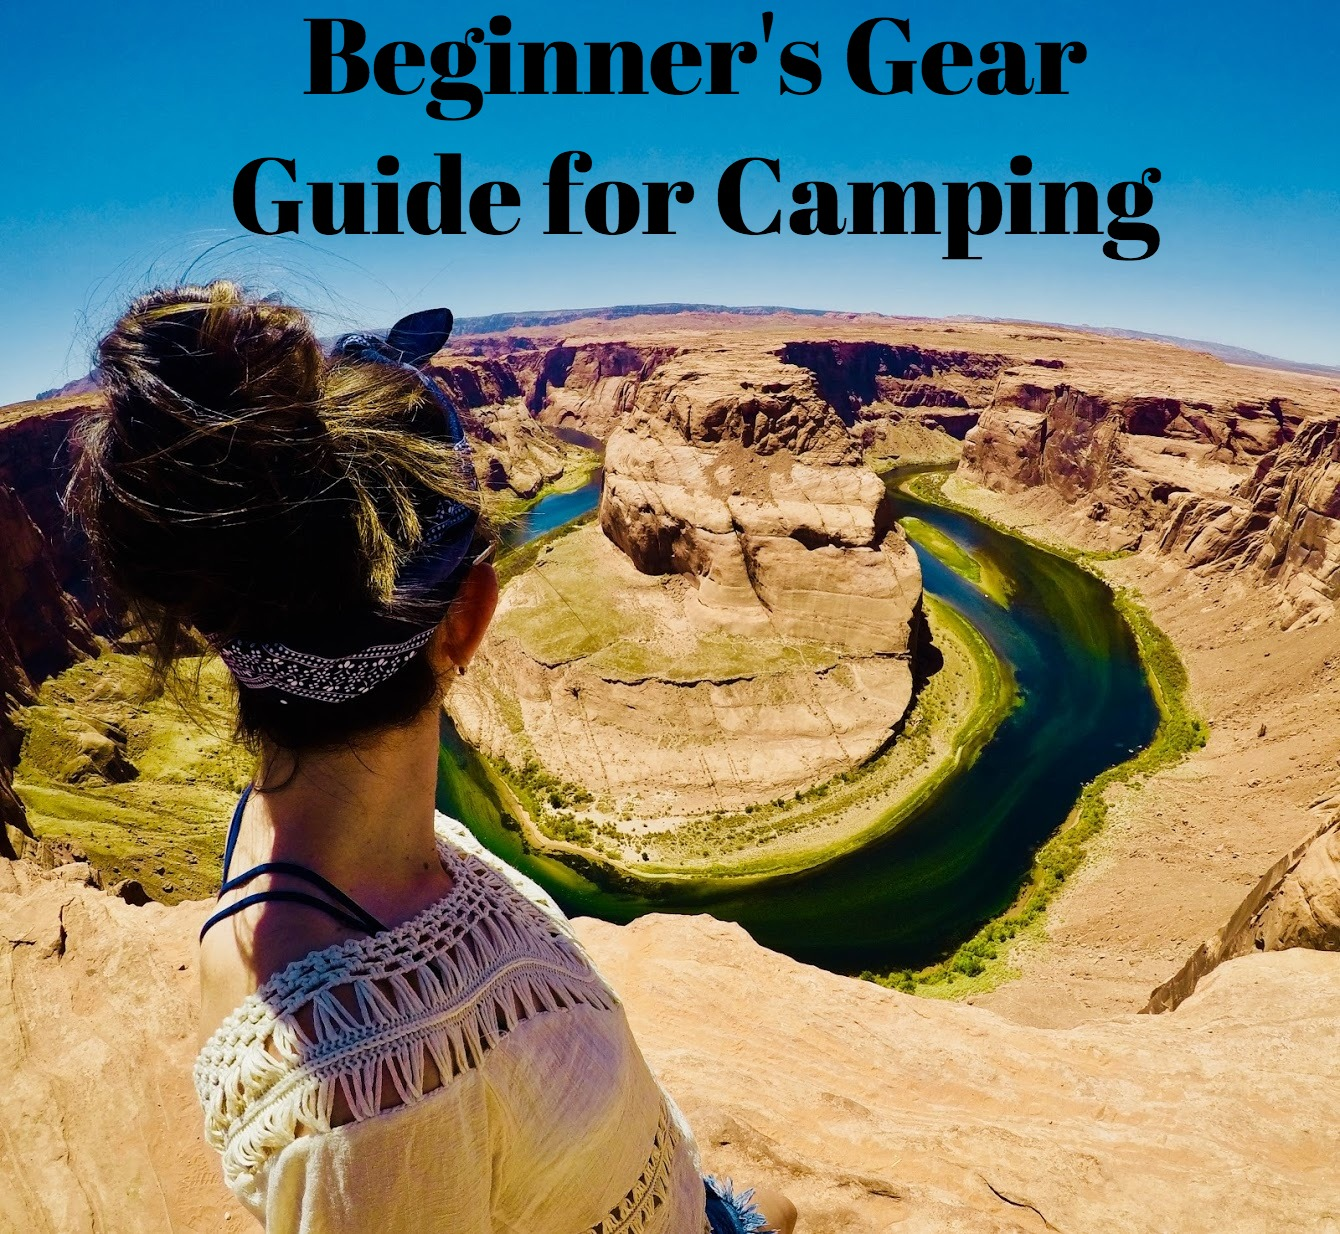 Beginner's Gear Guide for Camping, beginners guide to camping, camping guide, what to bring when you camp, camping items, essentials for camping, camping essentials, fun, camping, weekend trip, long camping trips,